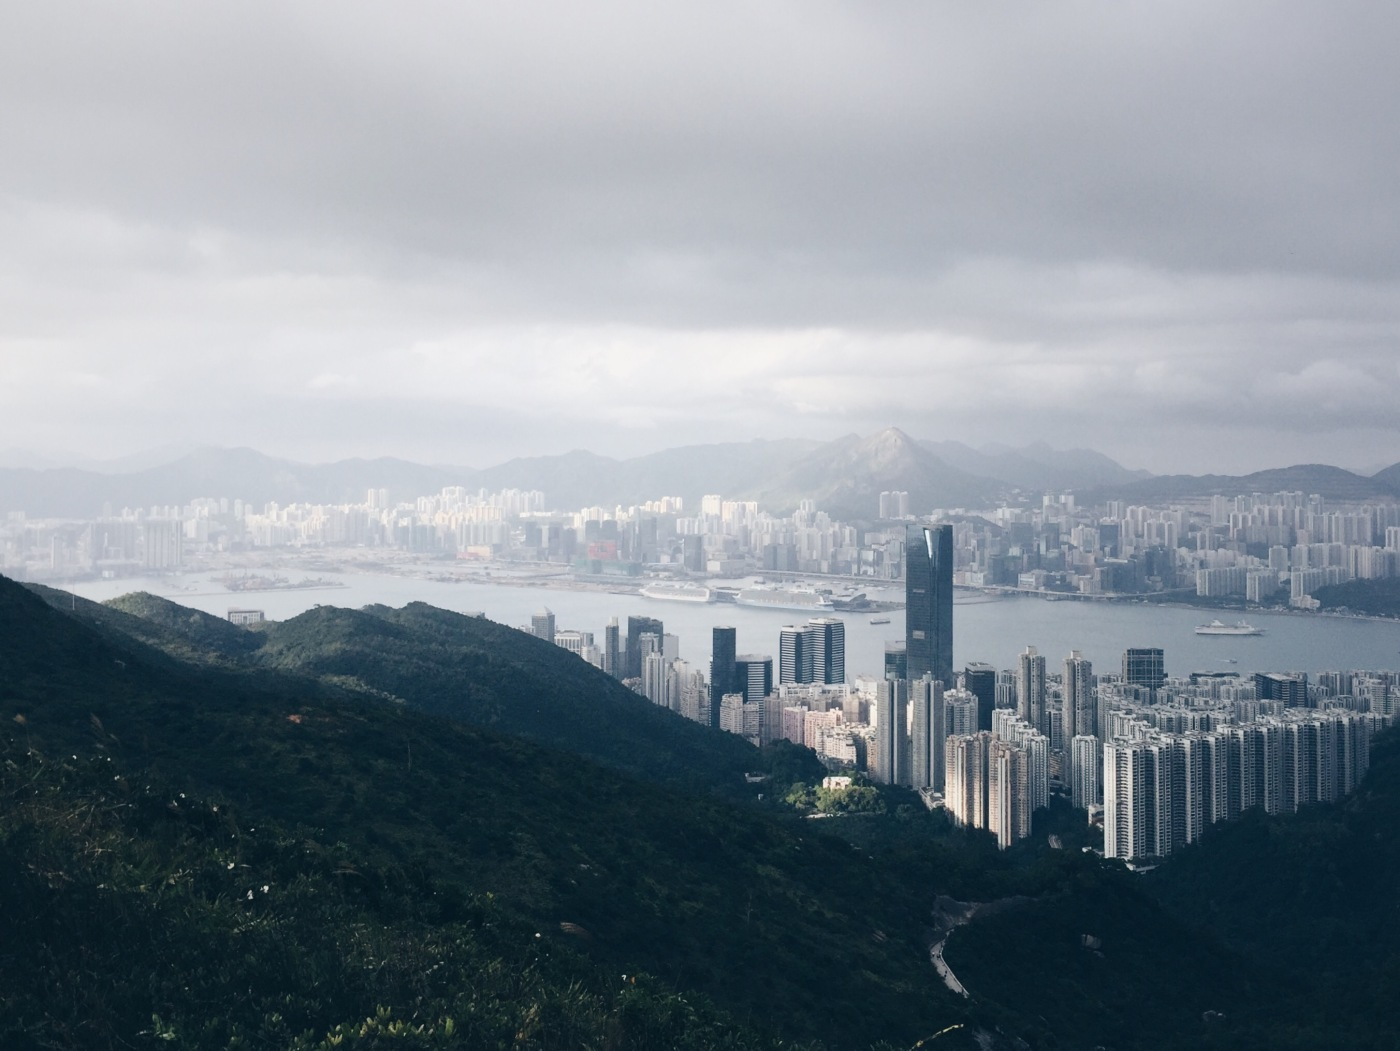 Hong Kong as seen from Mount Butler 畢拿山